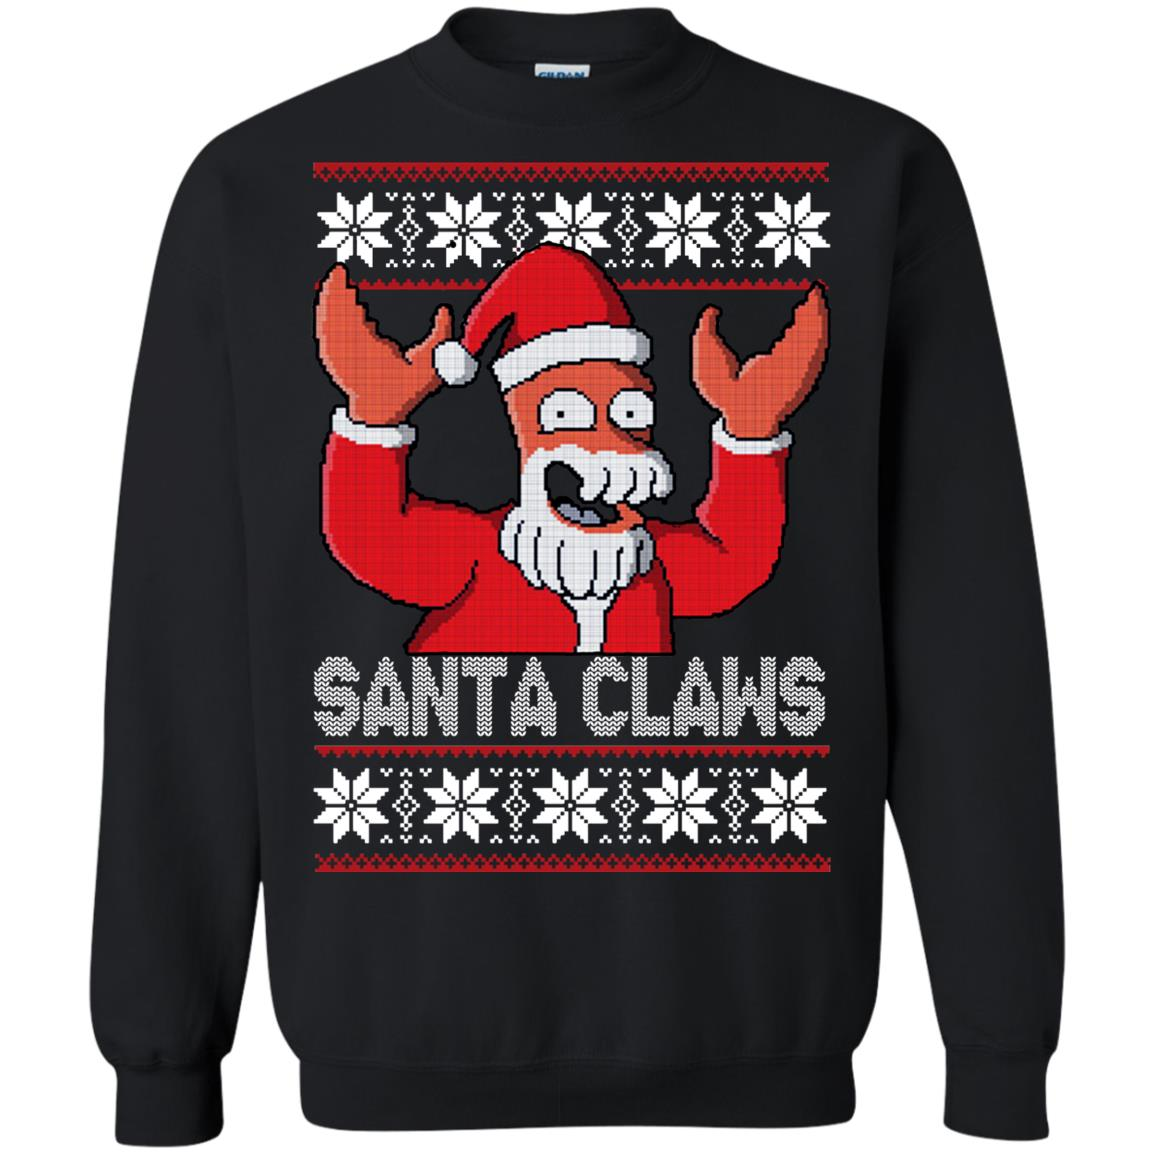 Zoidberg Santa Claws Christmas Sweater